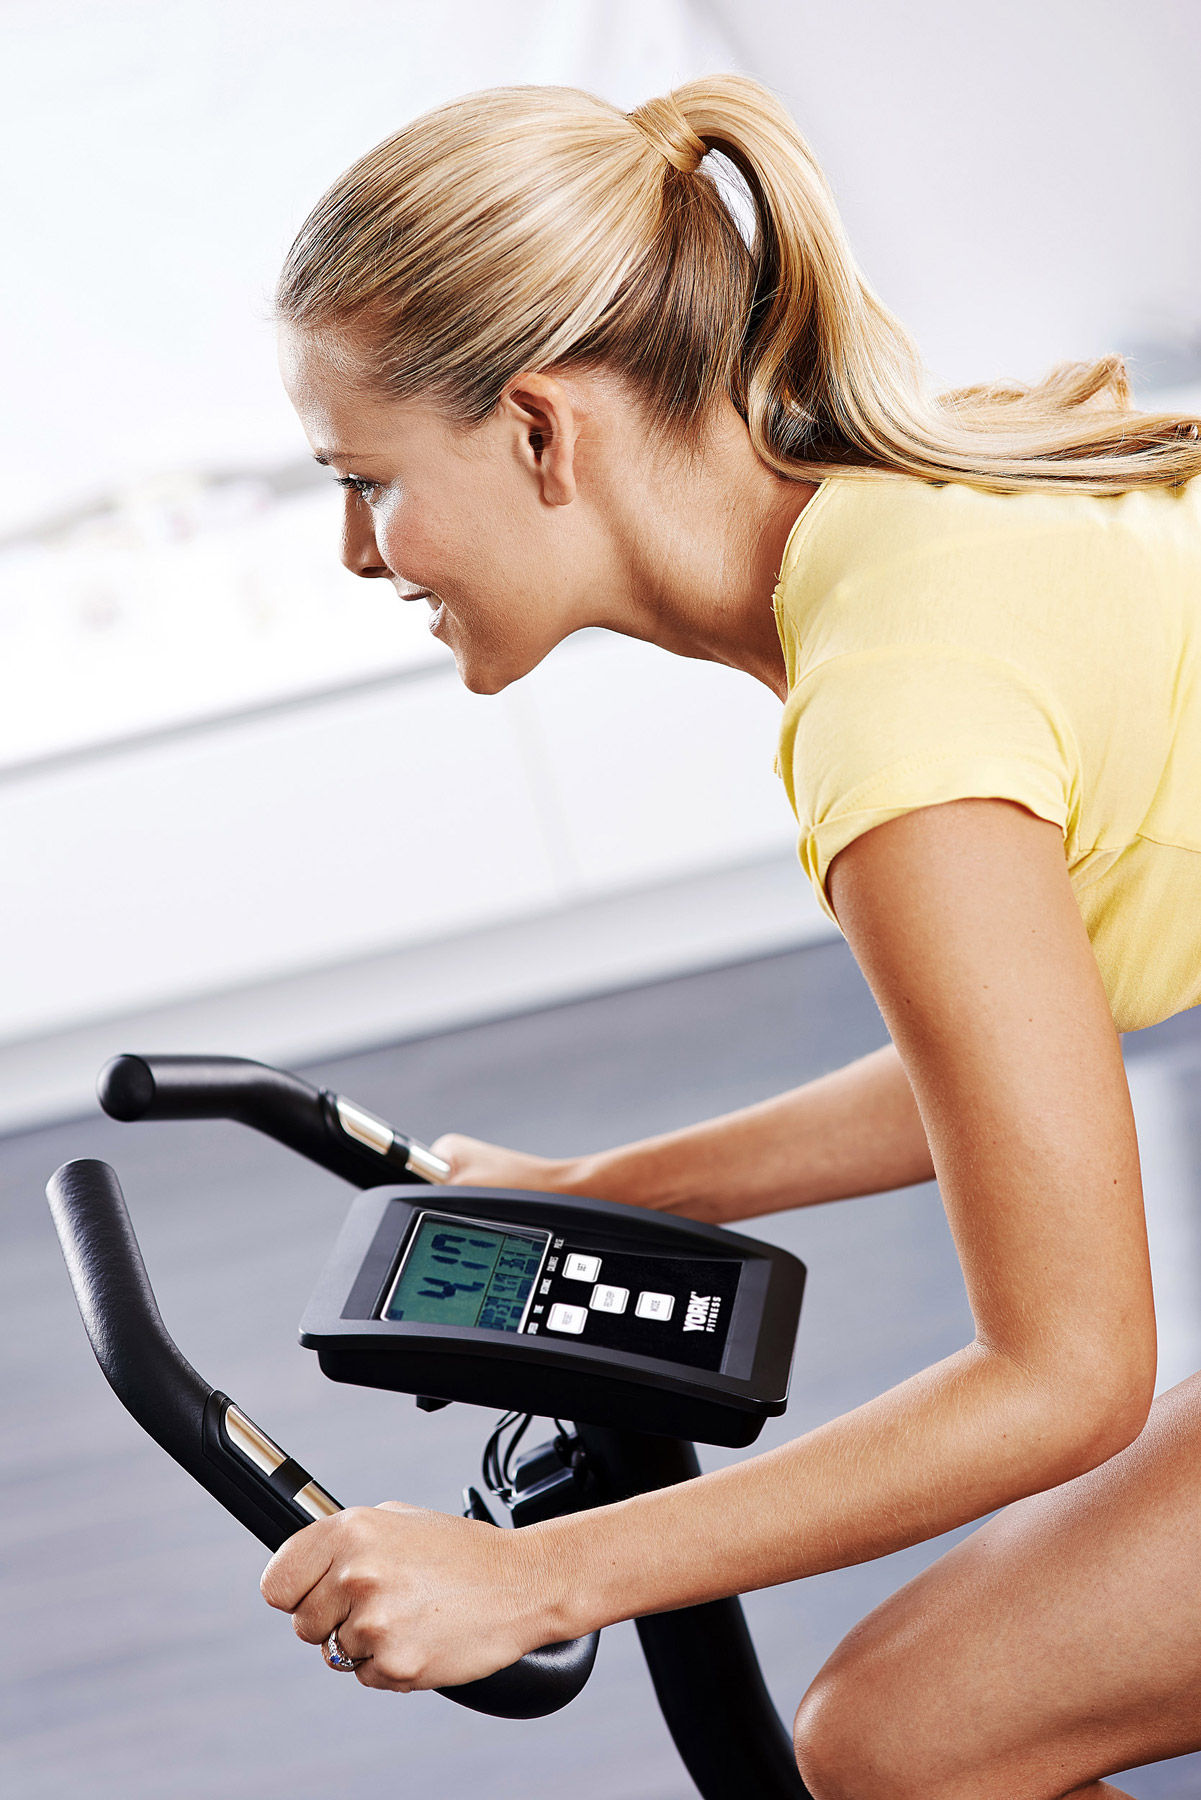 Close up of a woman on a York Fitness exercise bike